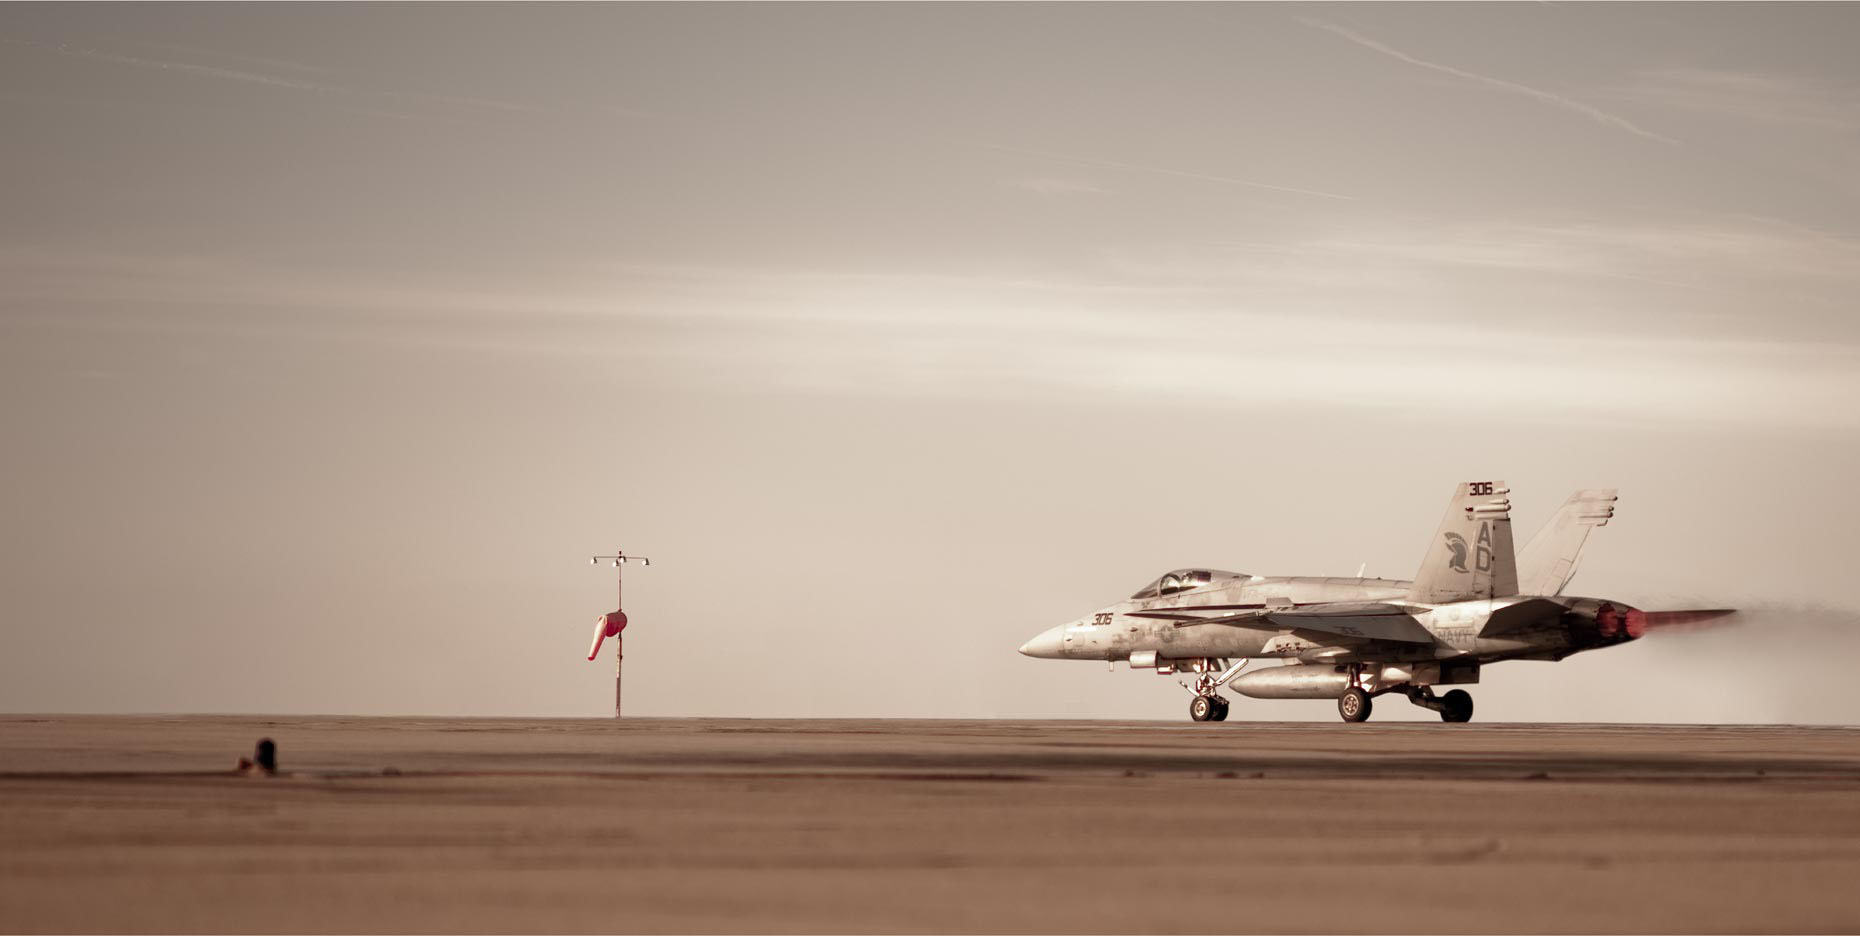 US_NAVY_F18_Hornet_on _runway.jpg